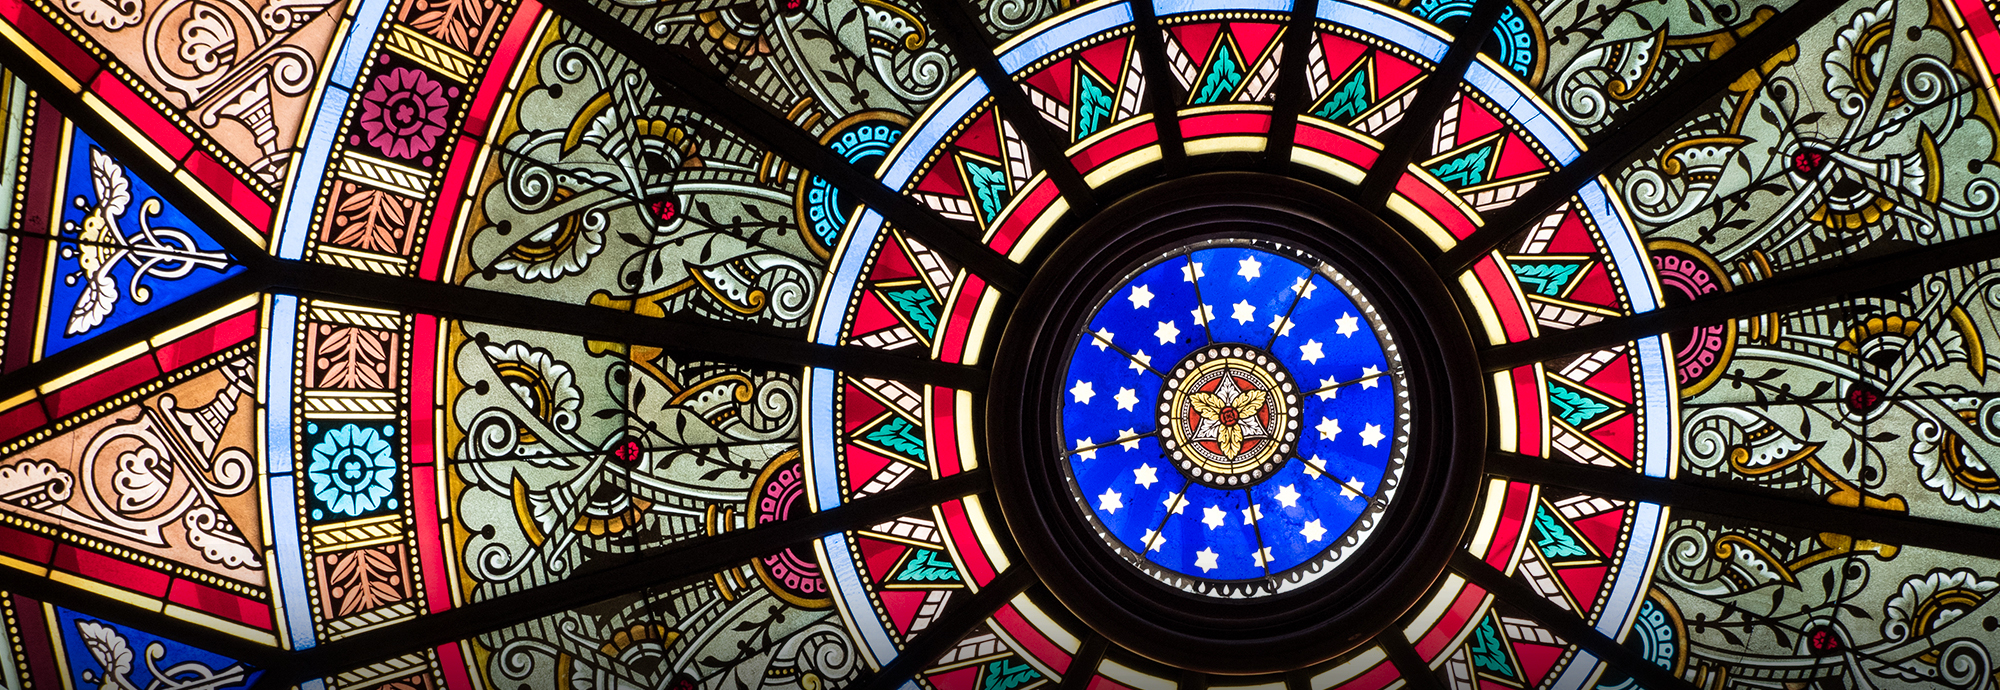 Stained Glass of Linderman Library